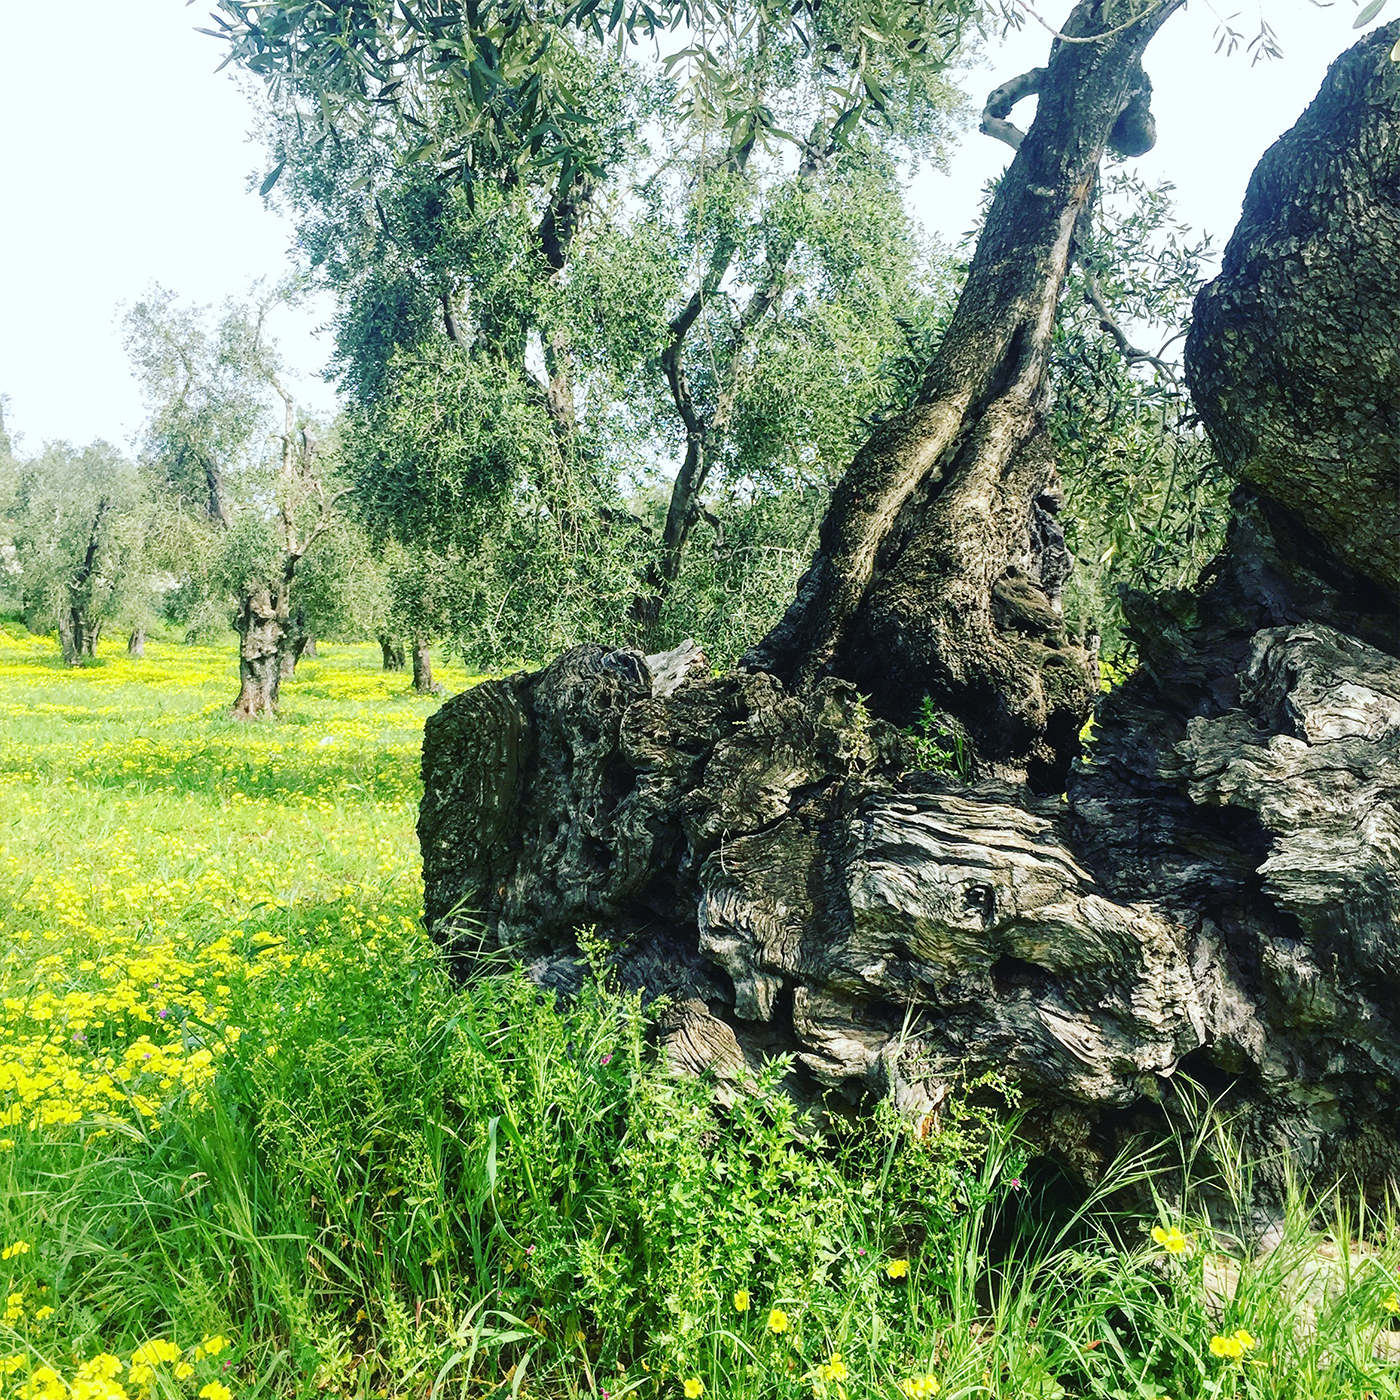 Big old olive trees in yellow flower beds, Vieste, Gargano